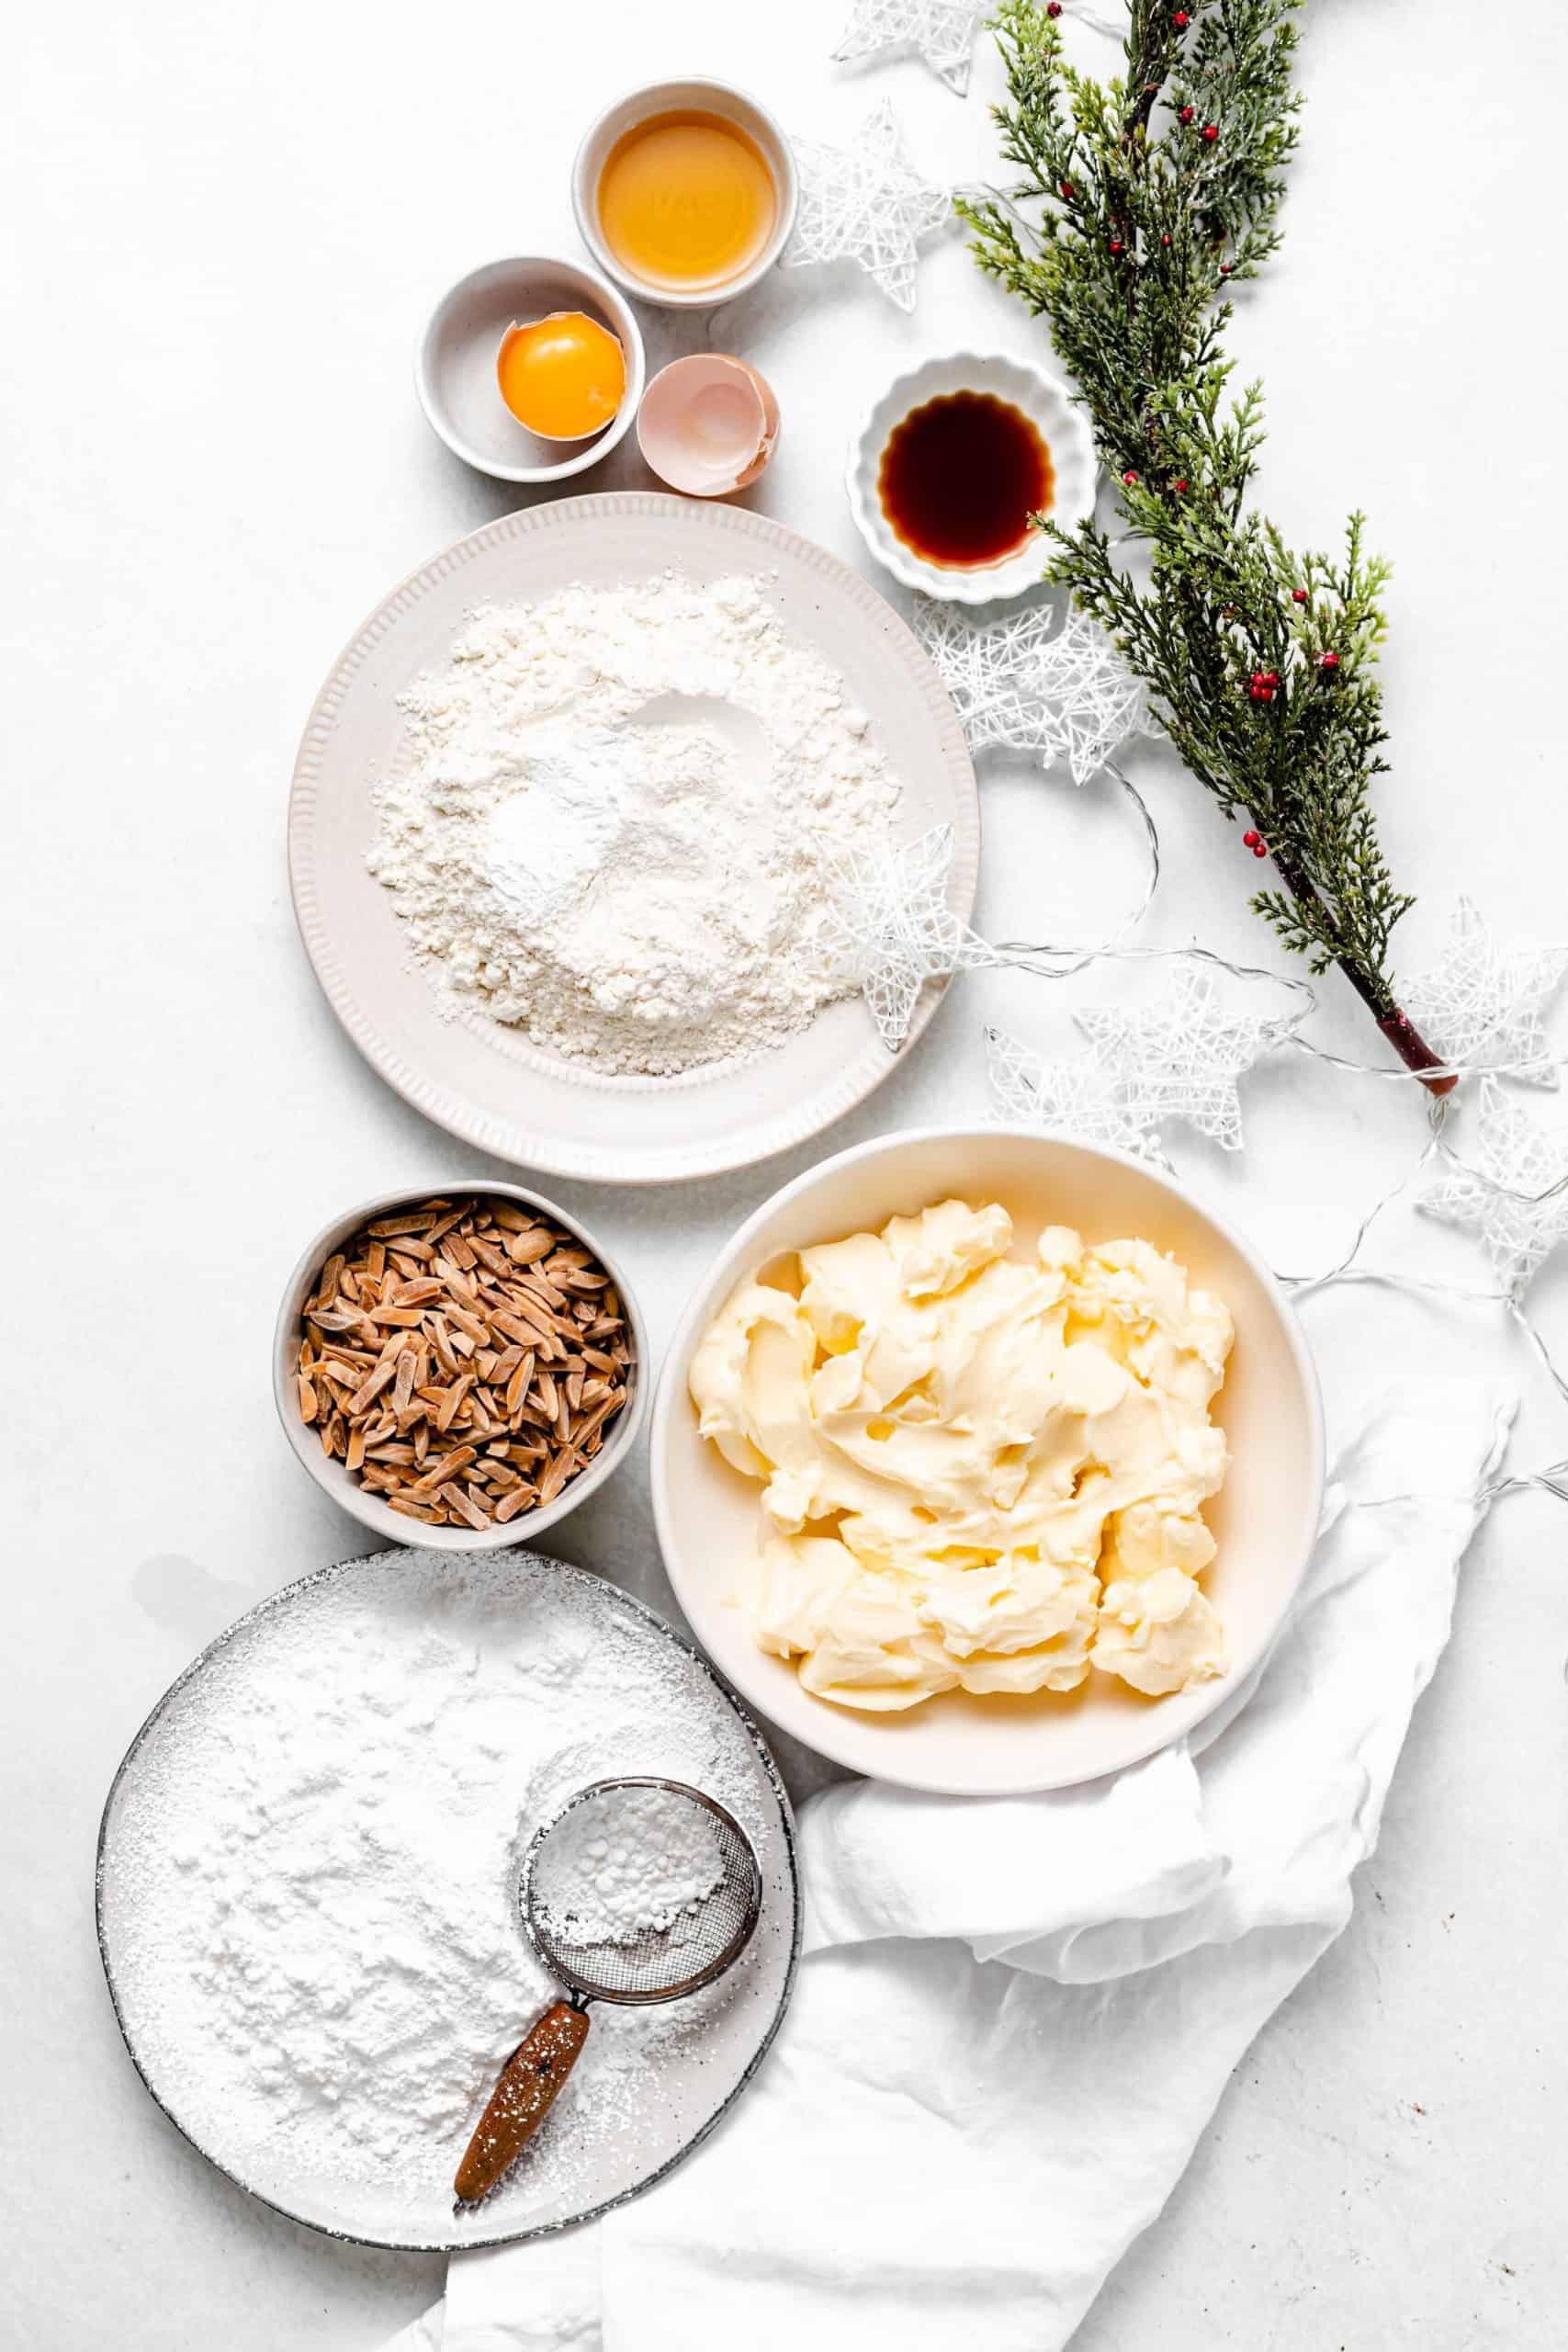 kourabiedes ingredients